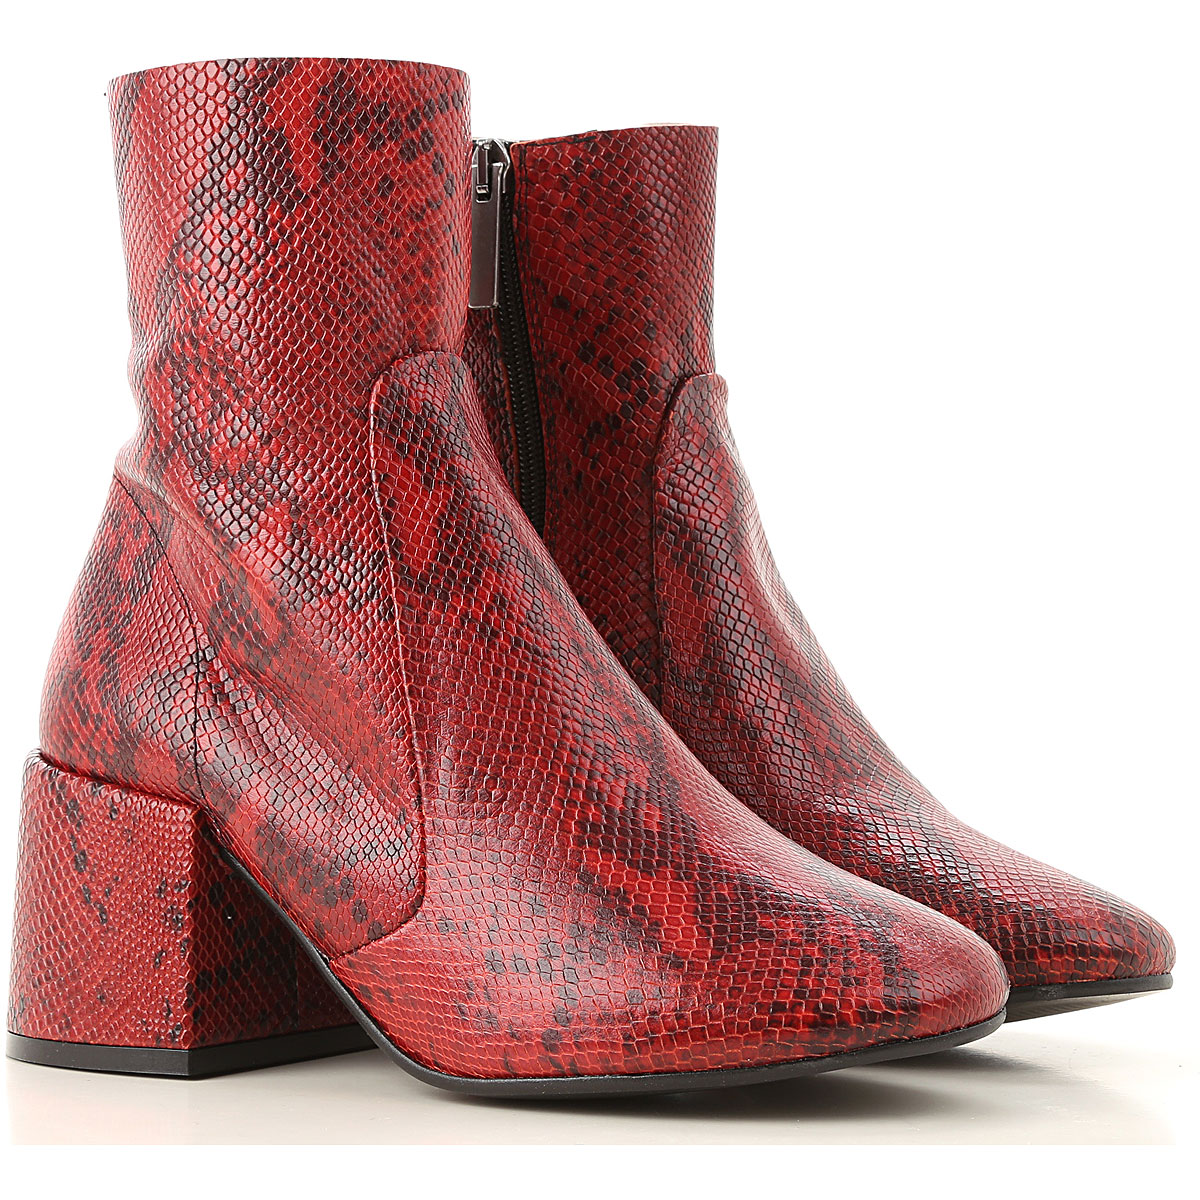 Jeffrey Campbell Boots for Women, Booties On Sale in Outlet, Red, Leather, 2019, 10 11 8 9